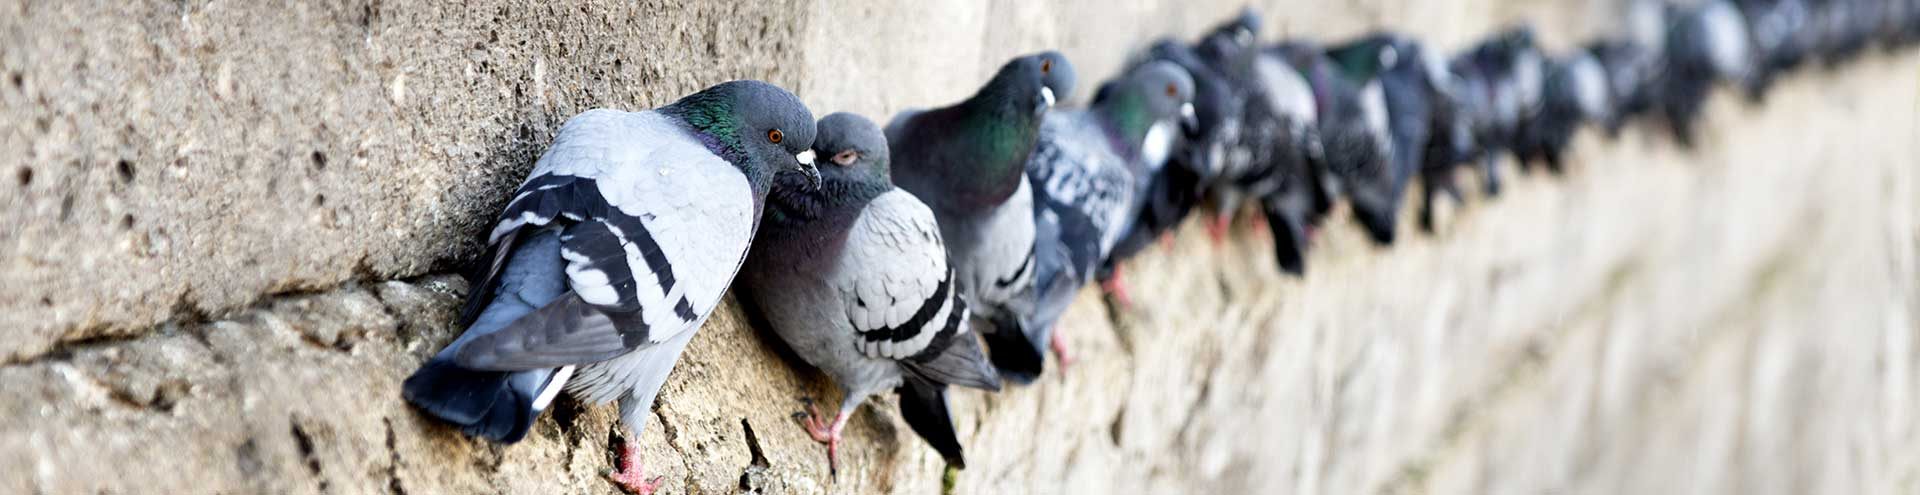 A group of pigeons collecting on the edge of a stone building.